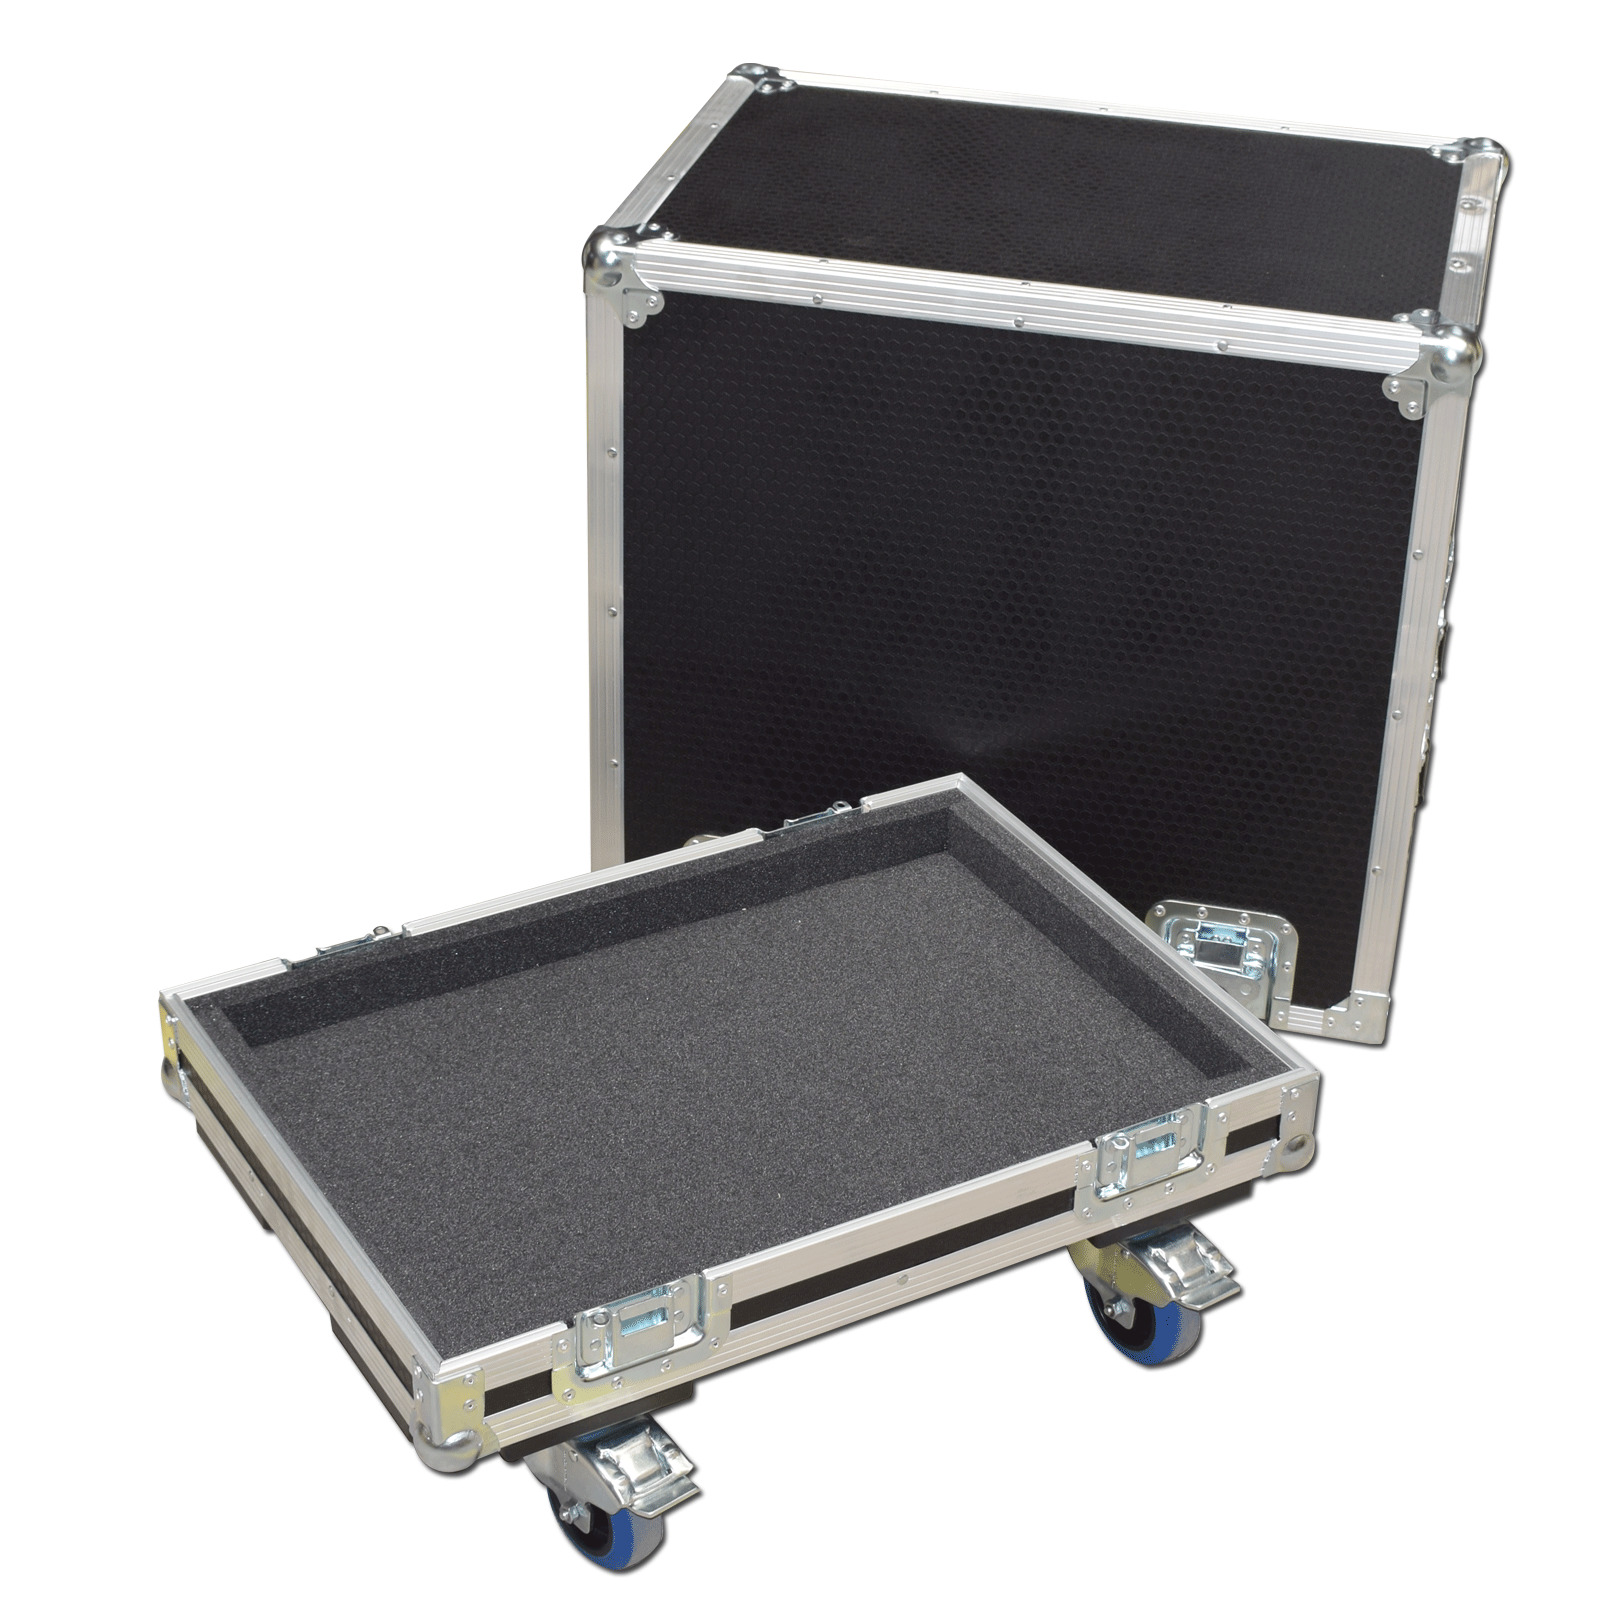 Diezel 4x12 Rear-Loaded Cabinet Flightcase